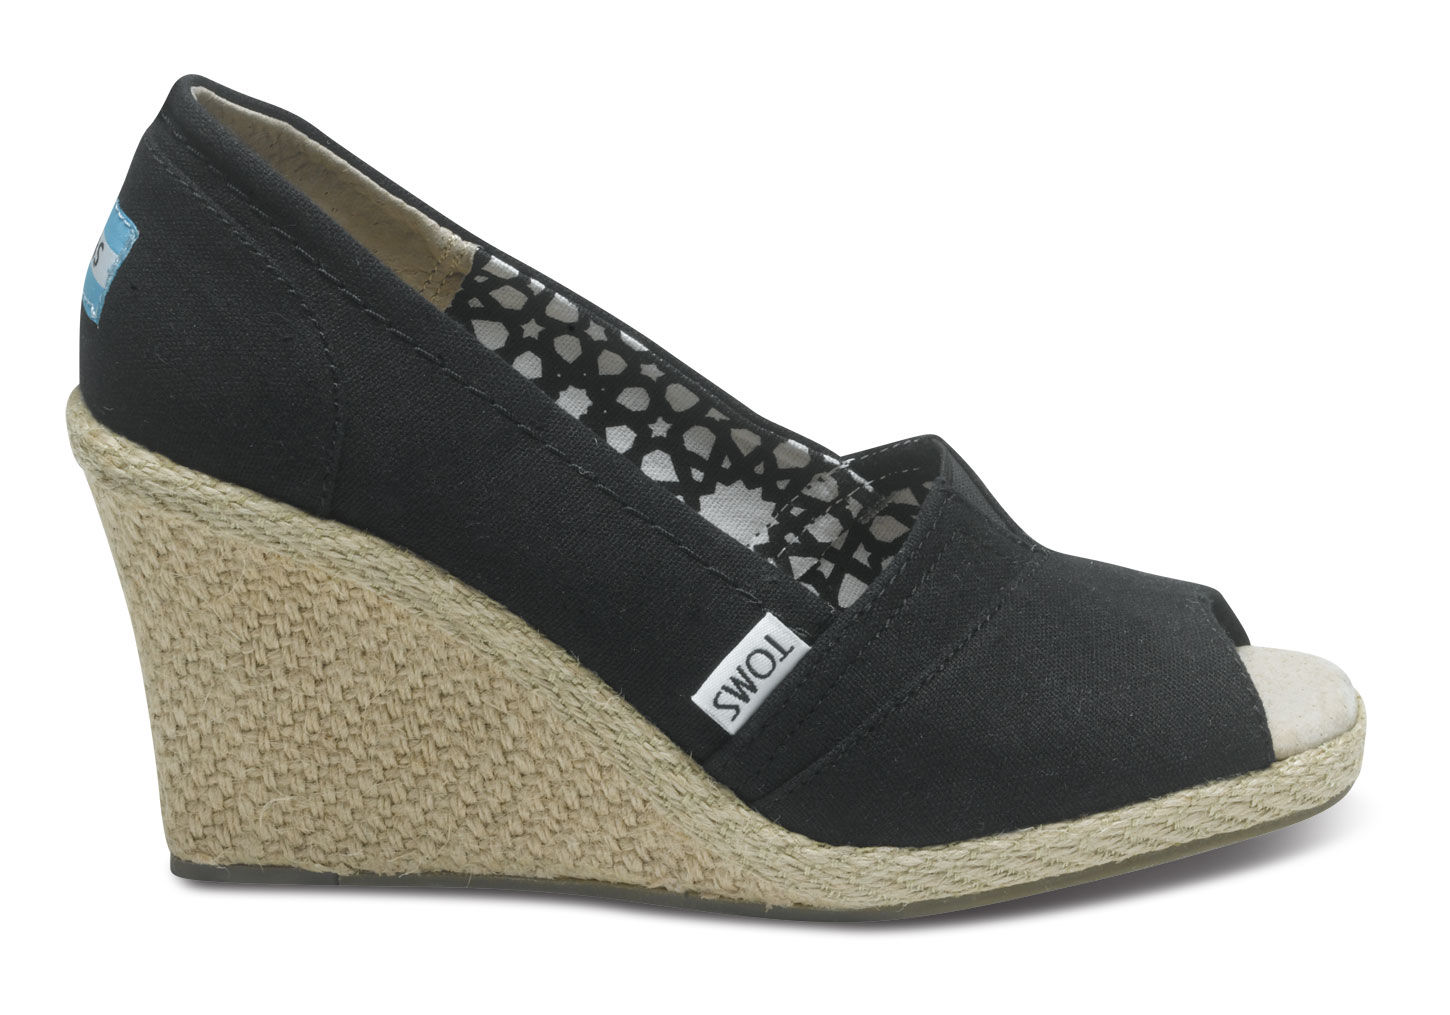 twisted boutik restocked in the toms classic